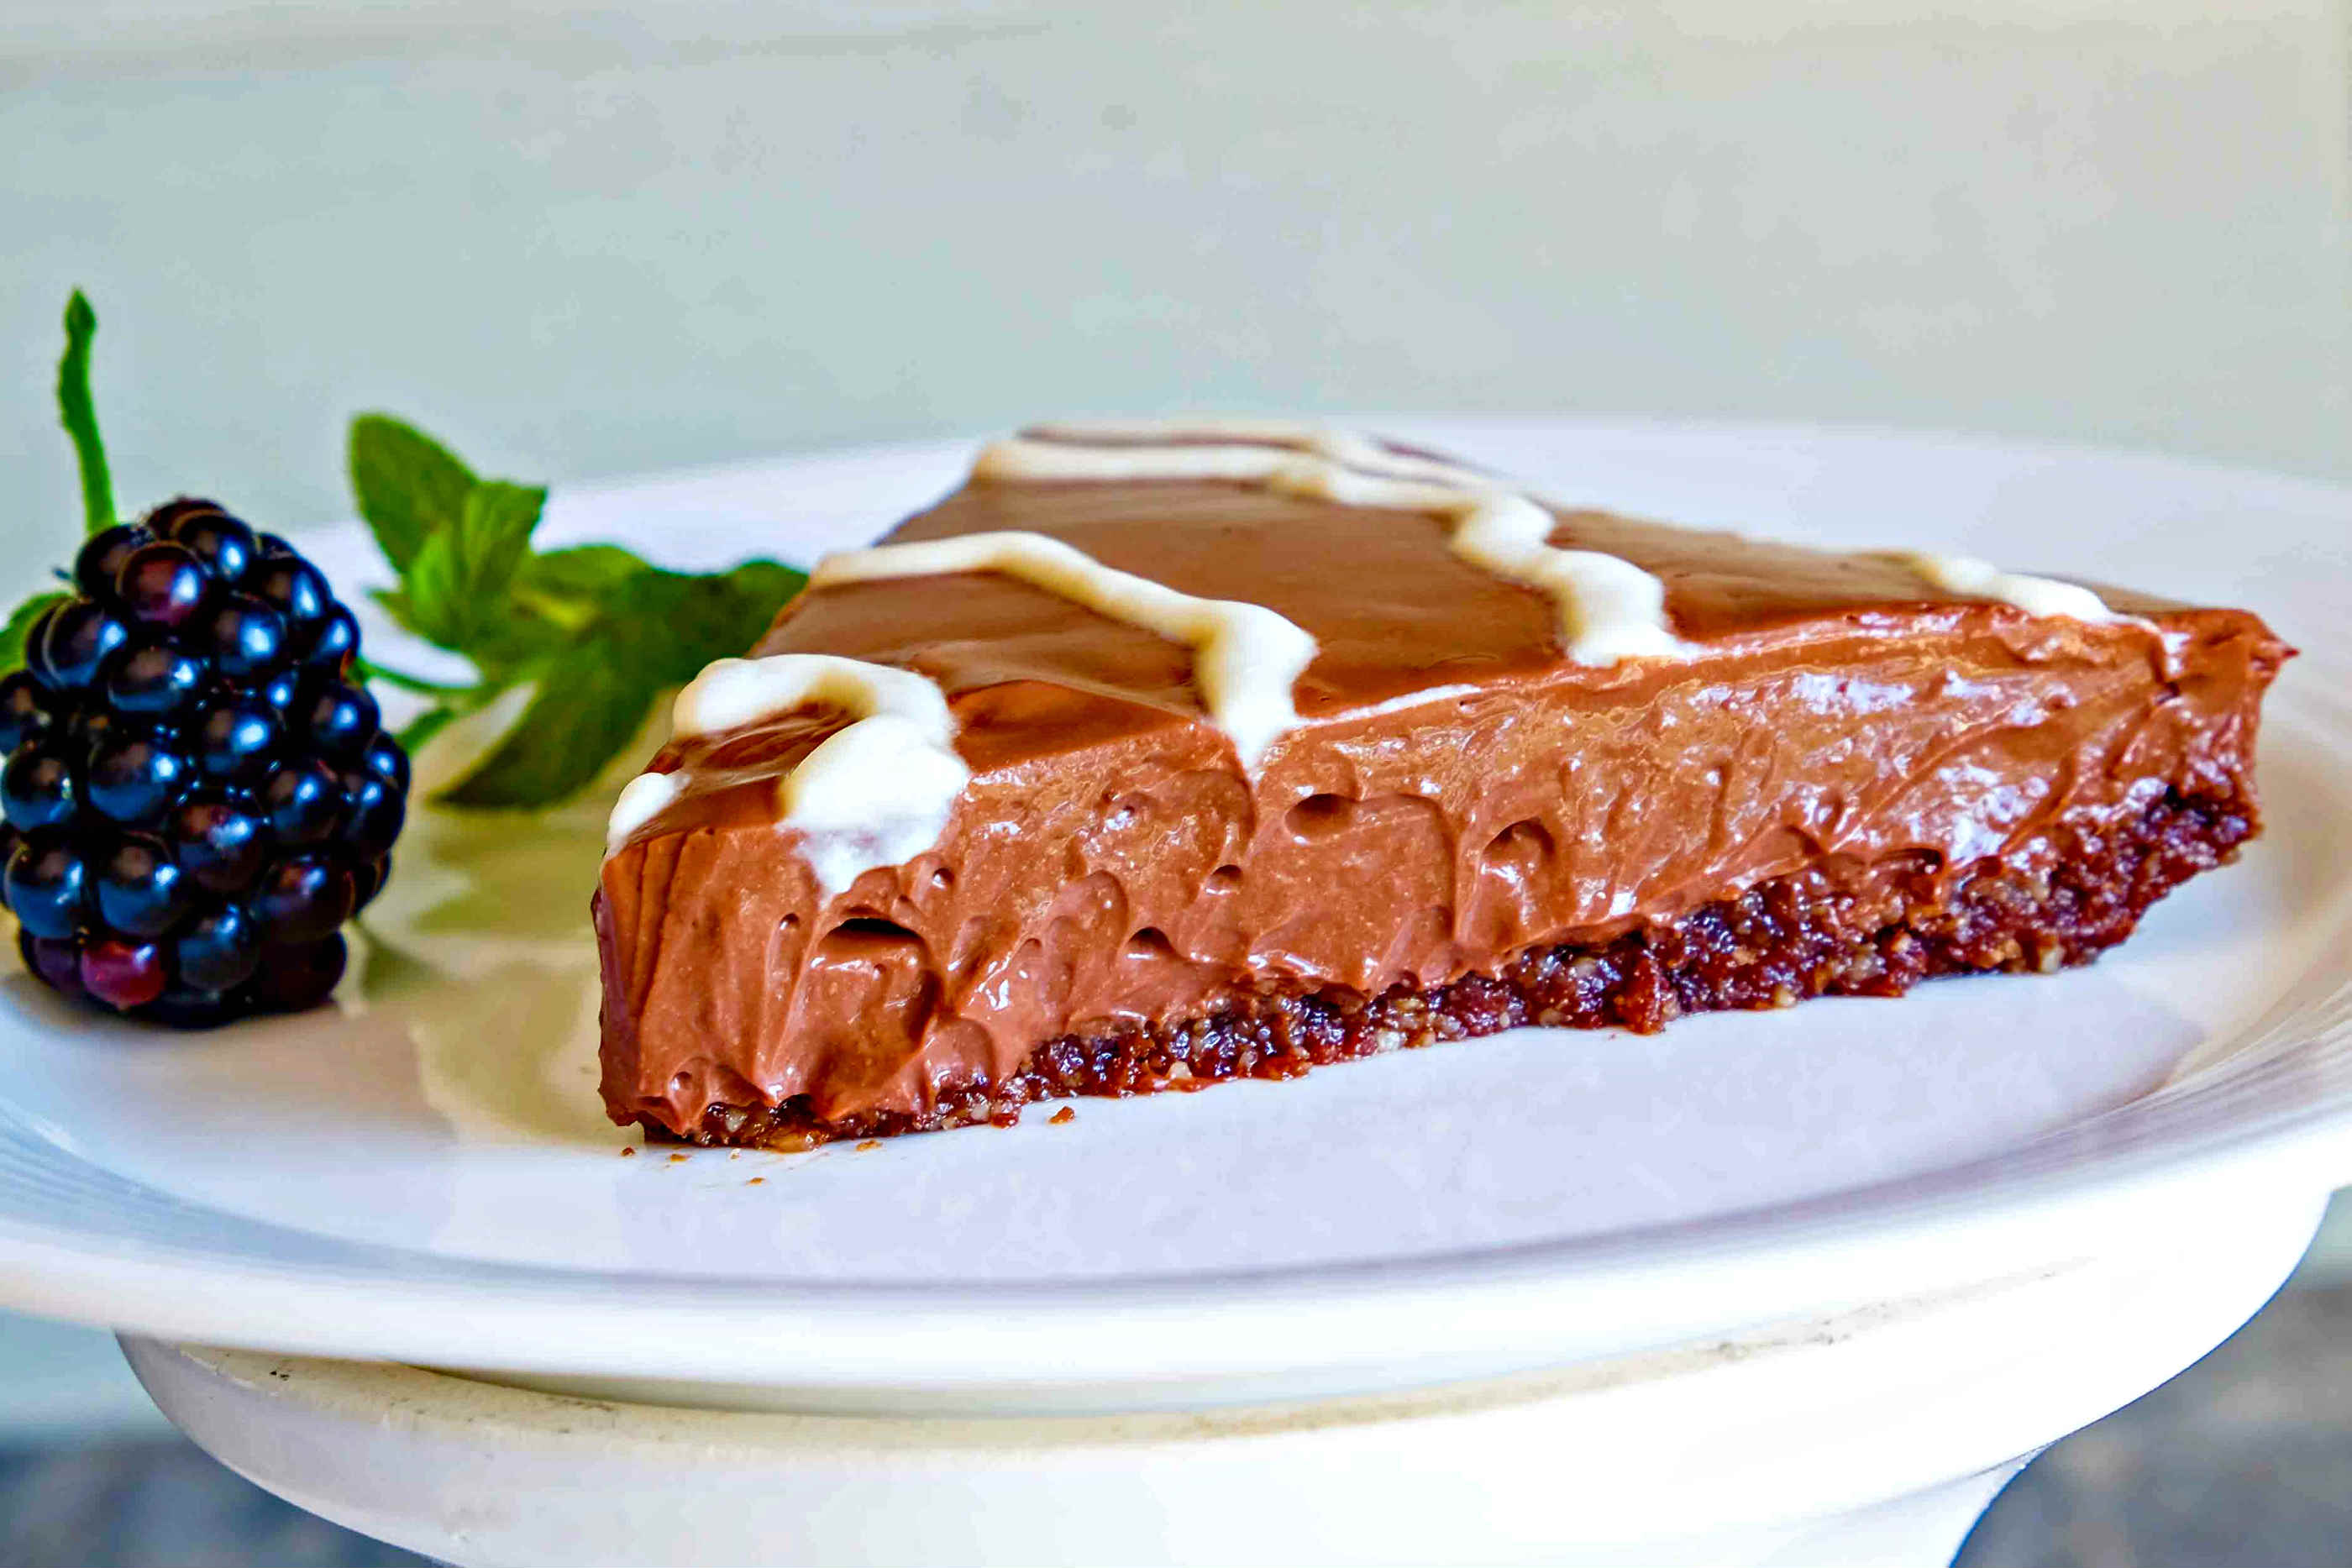 Vegan Gluten Free French Silk Cake